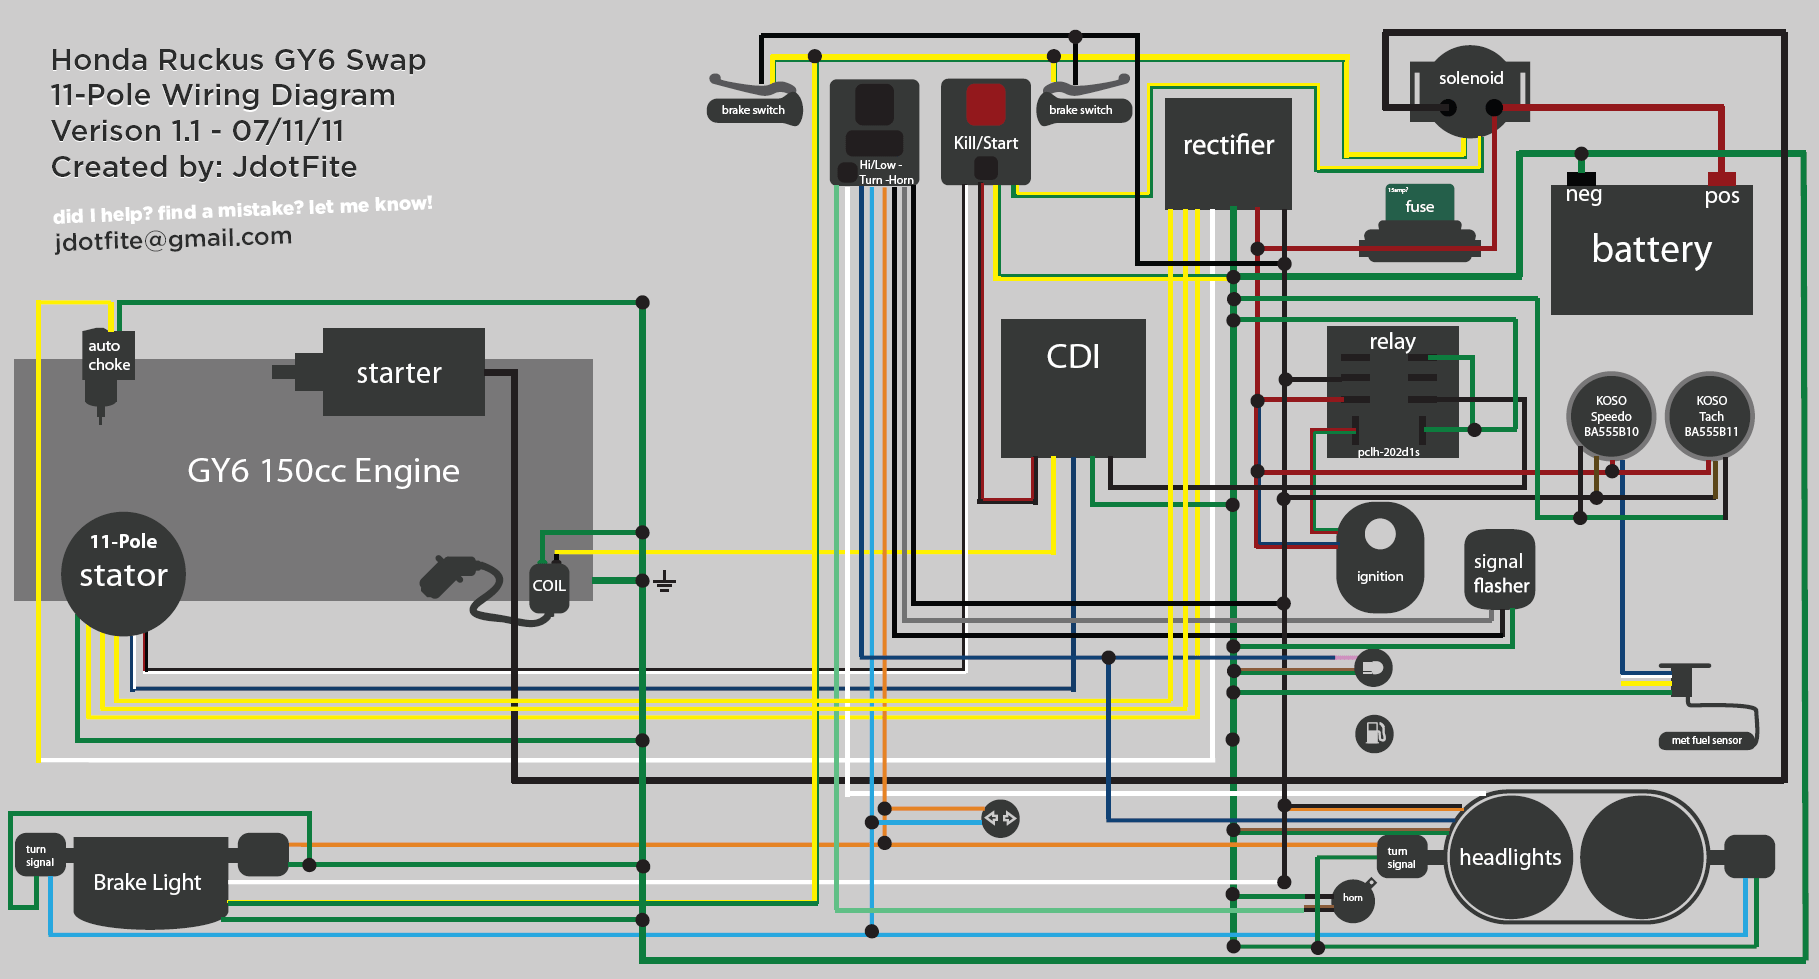 ruckus gy6 wiring diagram gy6 cdi wiring diagram yerf dog ignition diagram \u2022 free wiring 50cc scooter cdi wiring diagram at nearapp.co